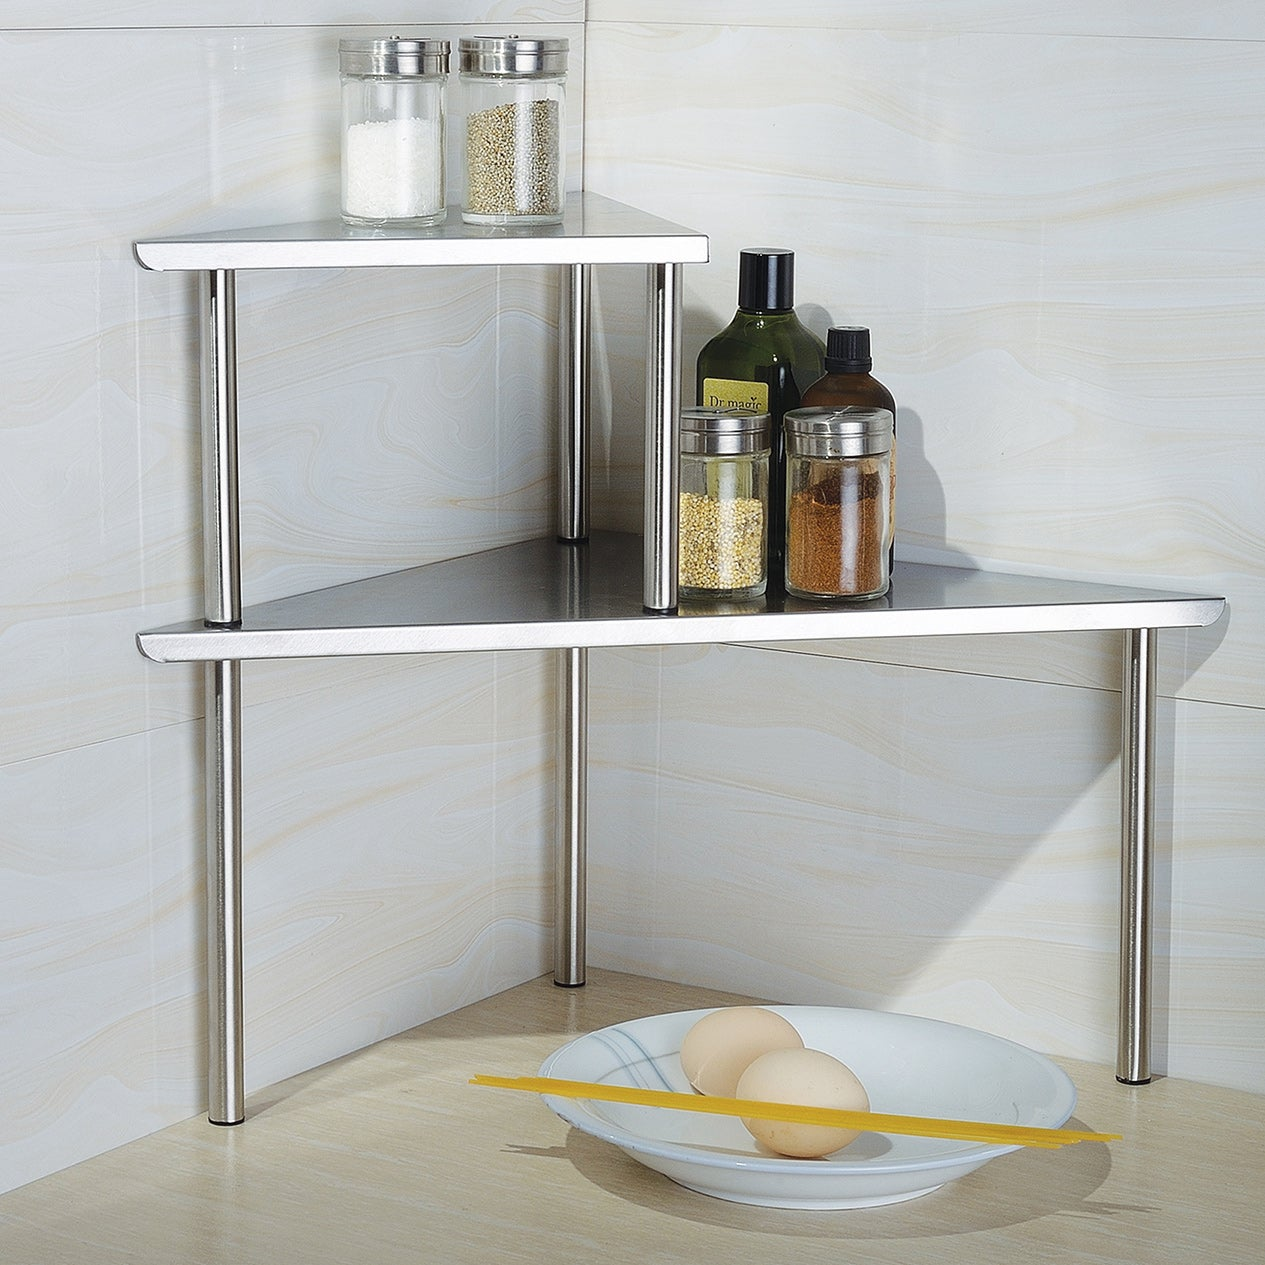 2 tier corner storage shelf stainless steel caddy for Bathroom countertop accessories